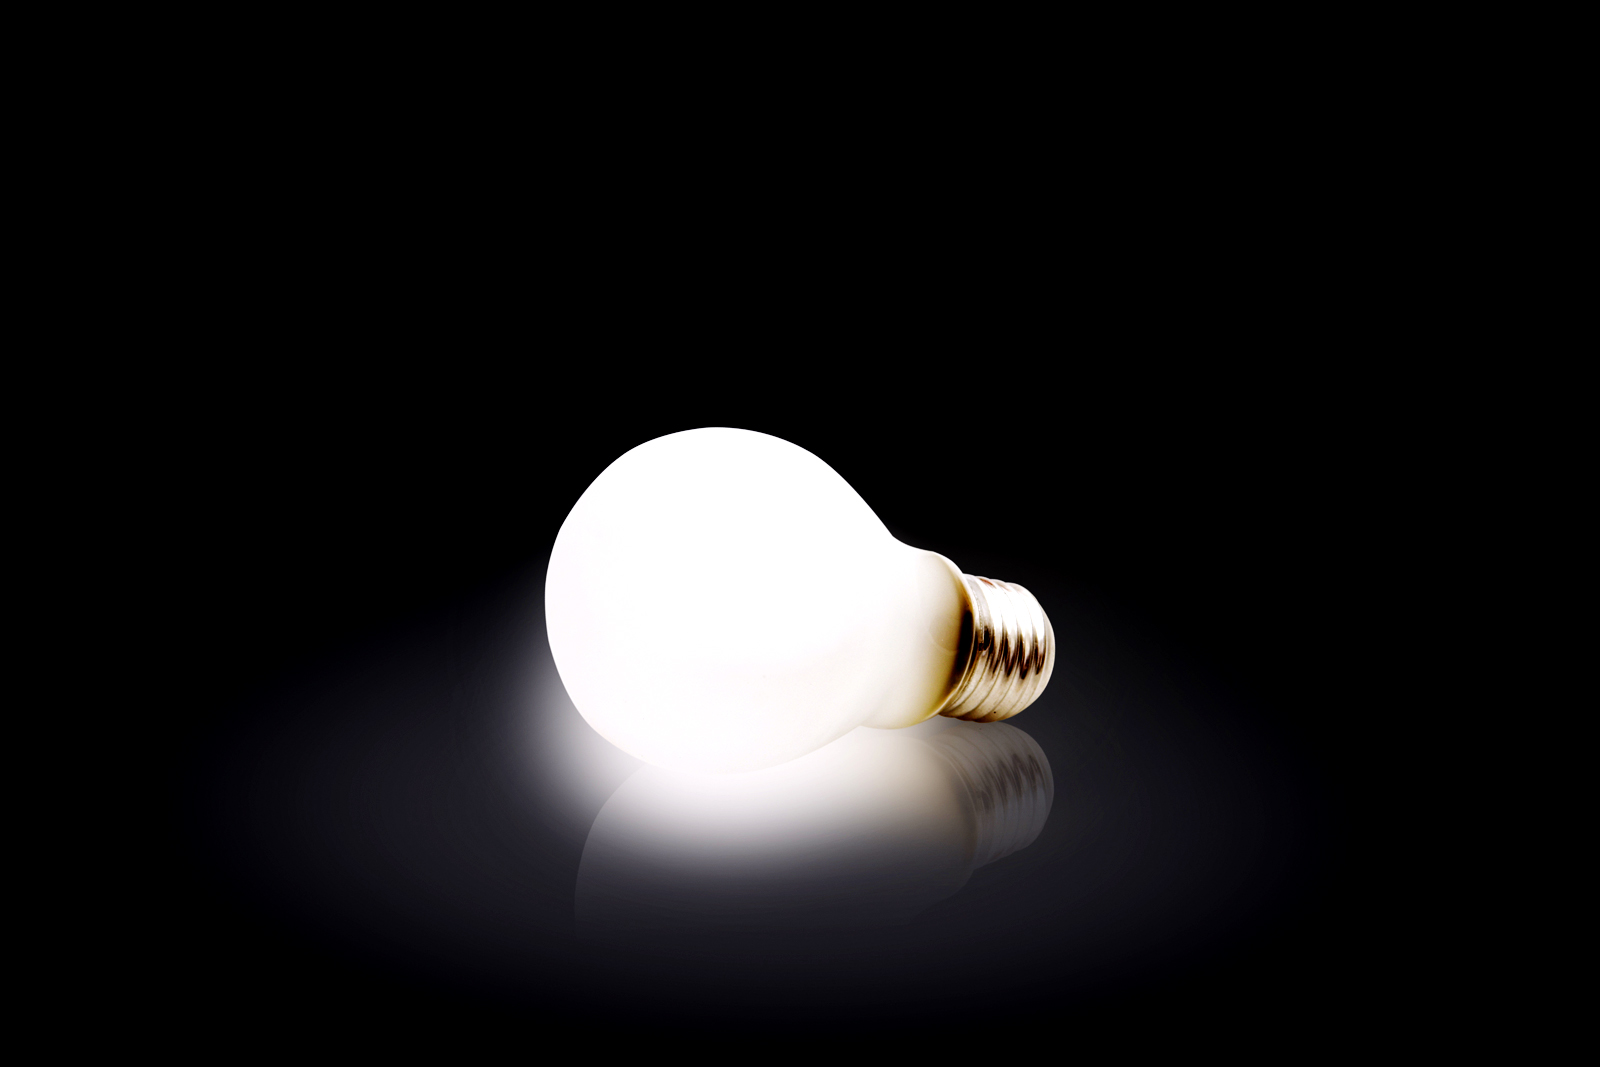 Light Bulb HD Wallpapers Stock Photos Download Wallpapers in HD 1600x1067